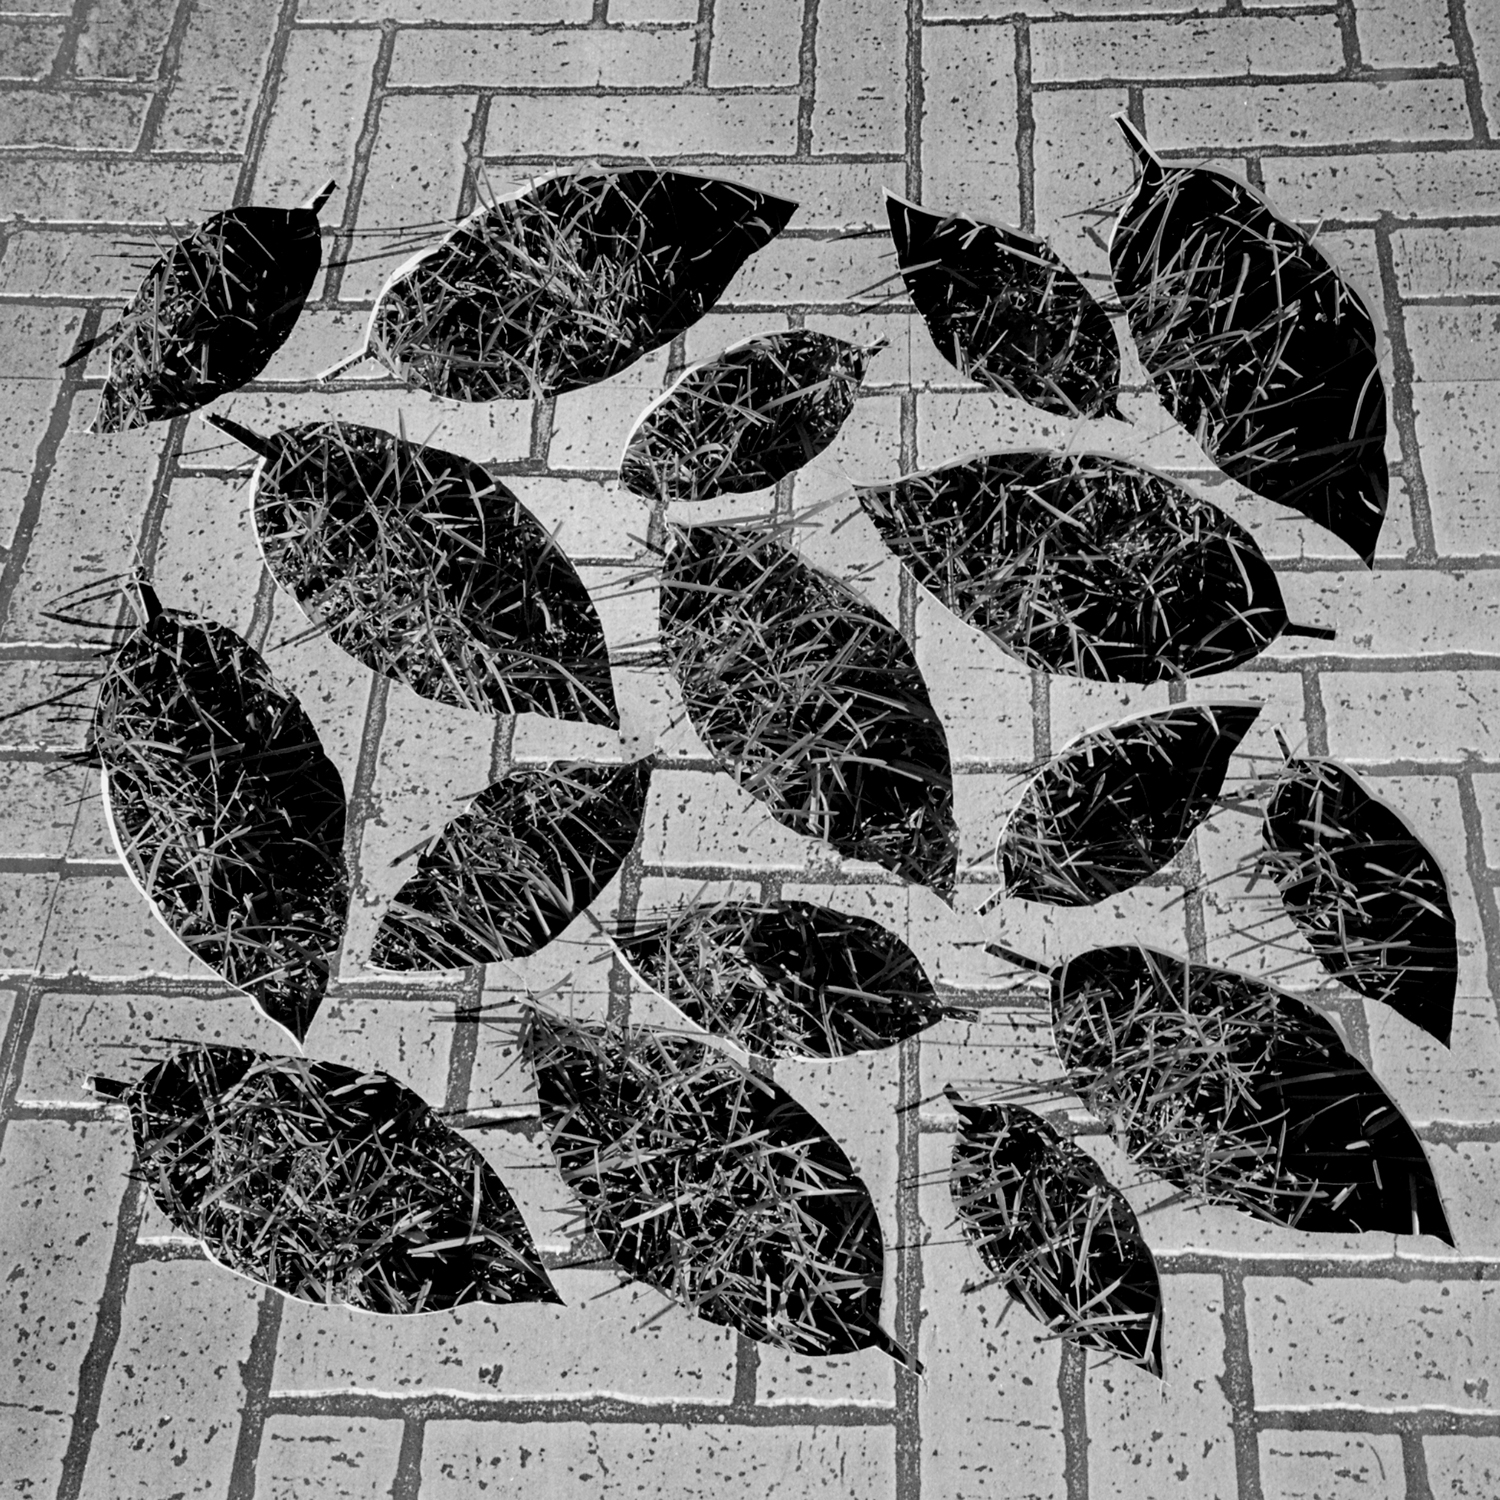 Leaves 2, 2005, archival pigment print on paper